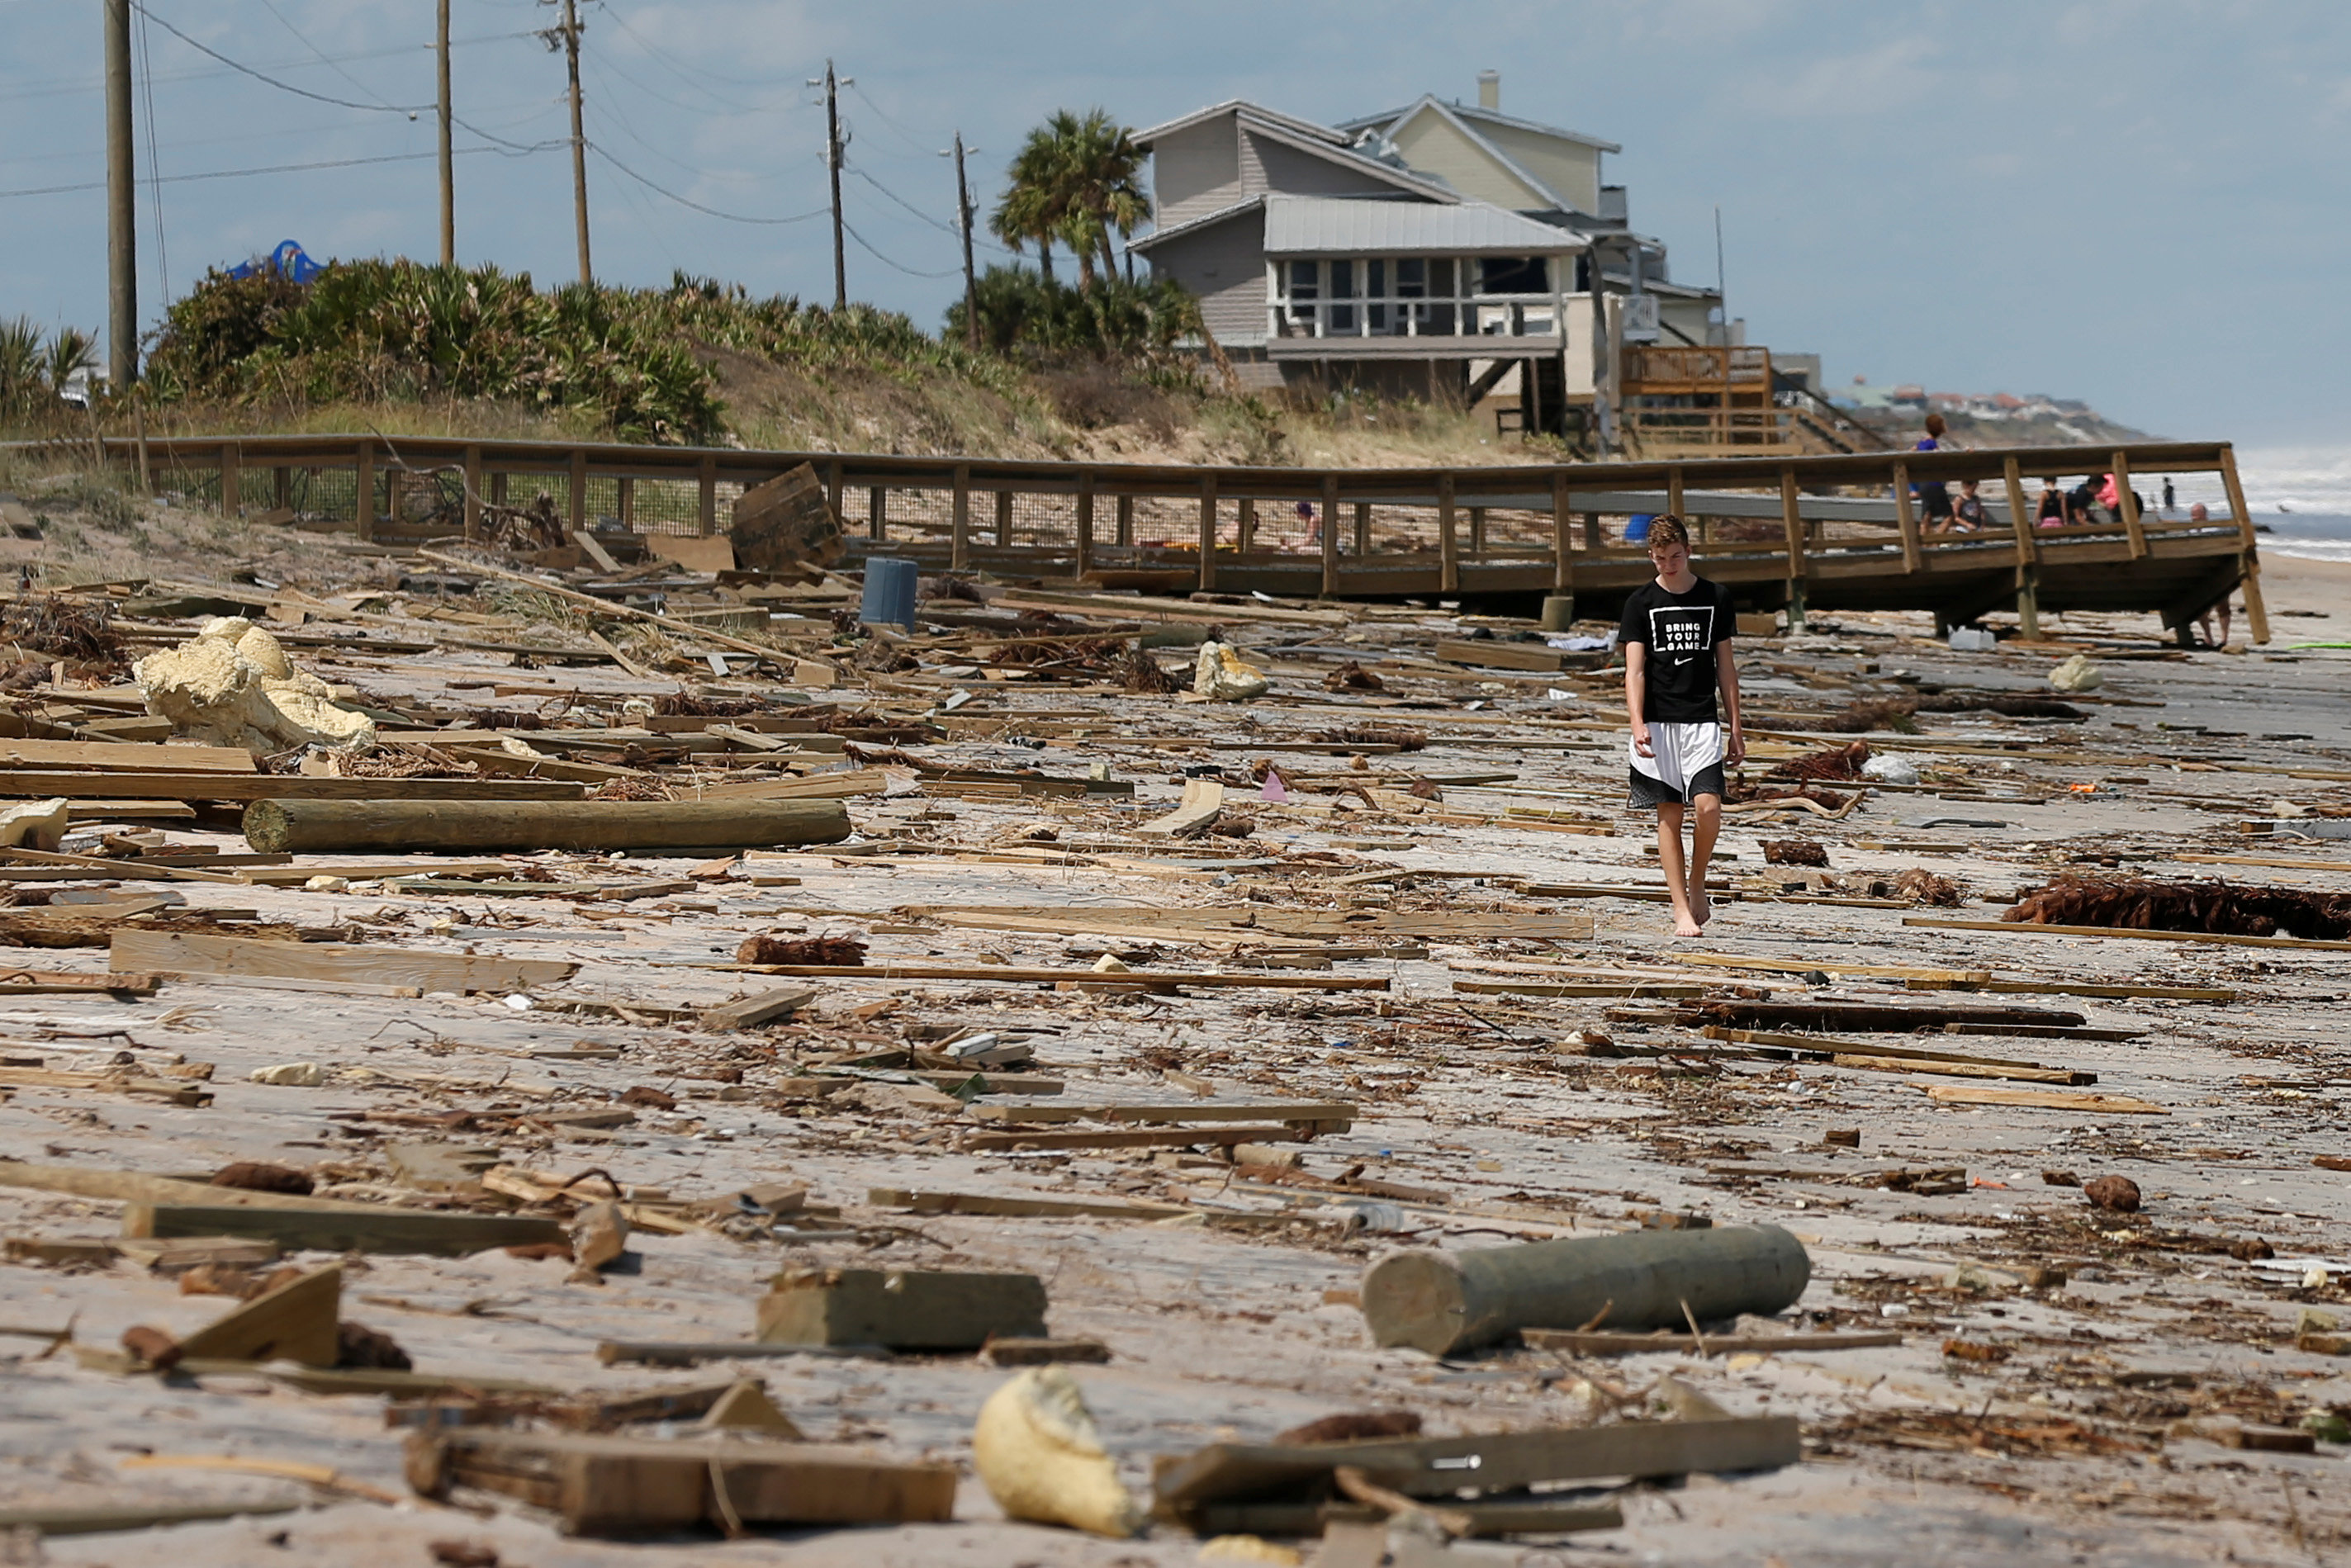 A boy walks amongst debris on the beach after Hurricane Irma passed the area in Ponte Vedra Beach, Florida, U.S., September 12, 2017. REUTERS/Chris Wattie